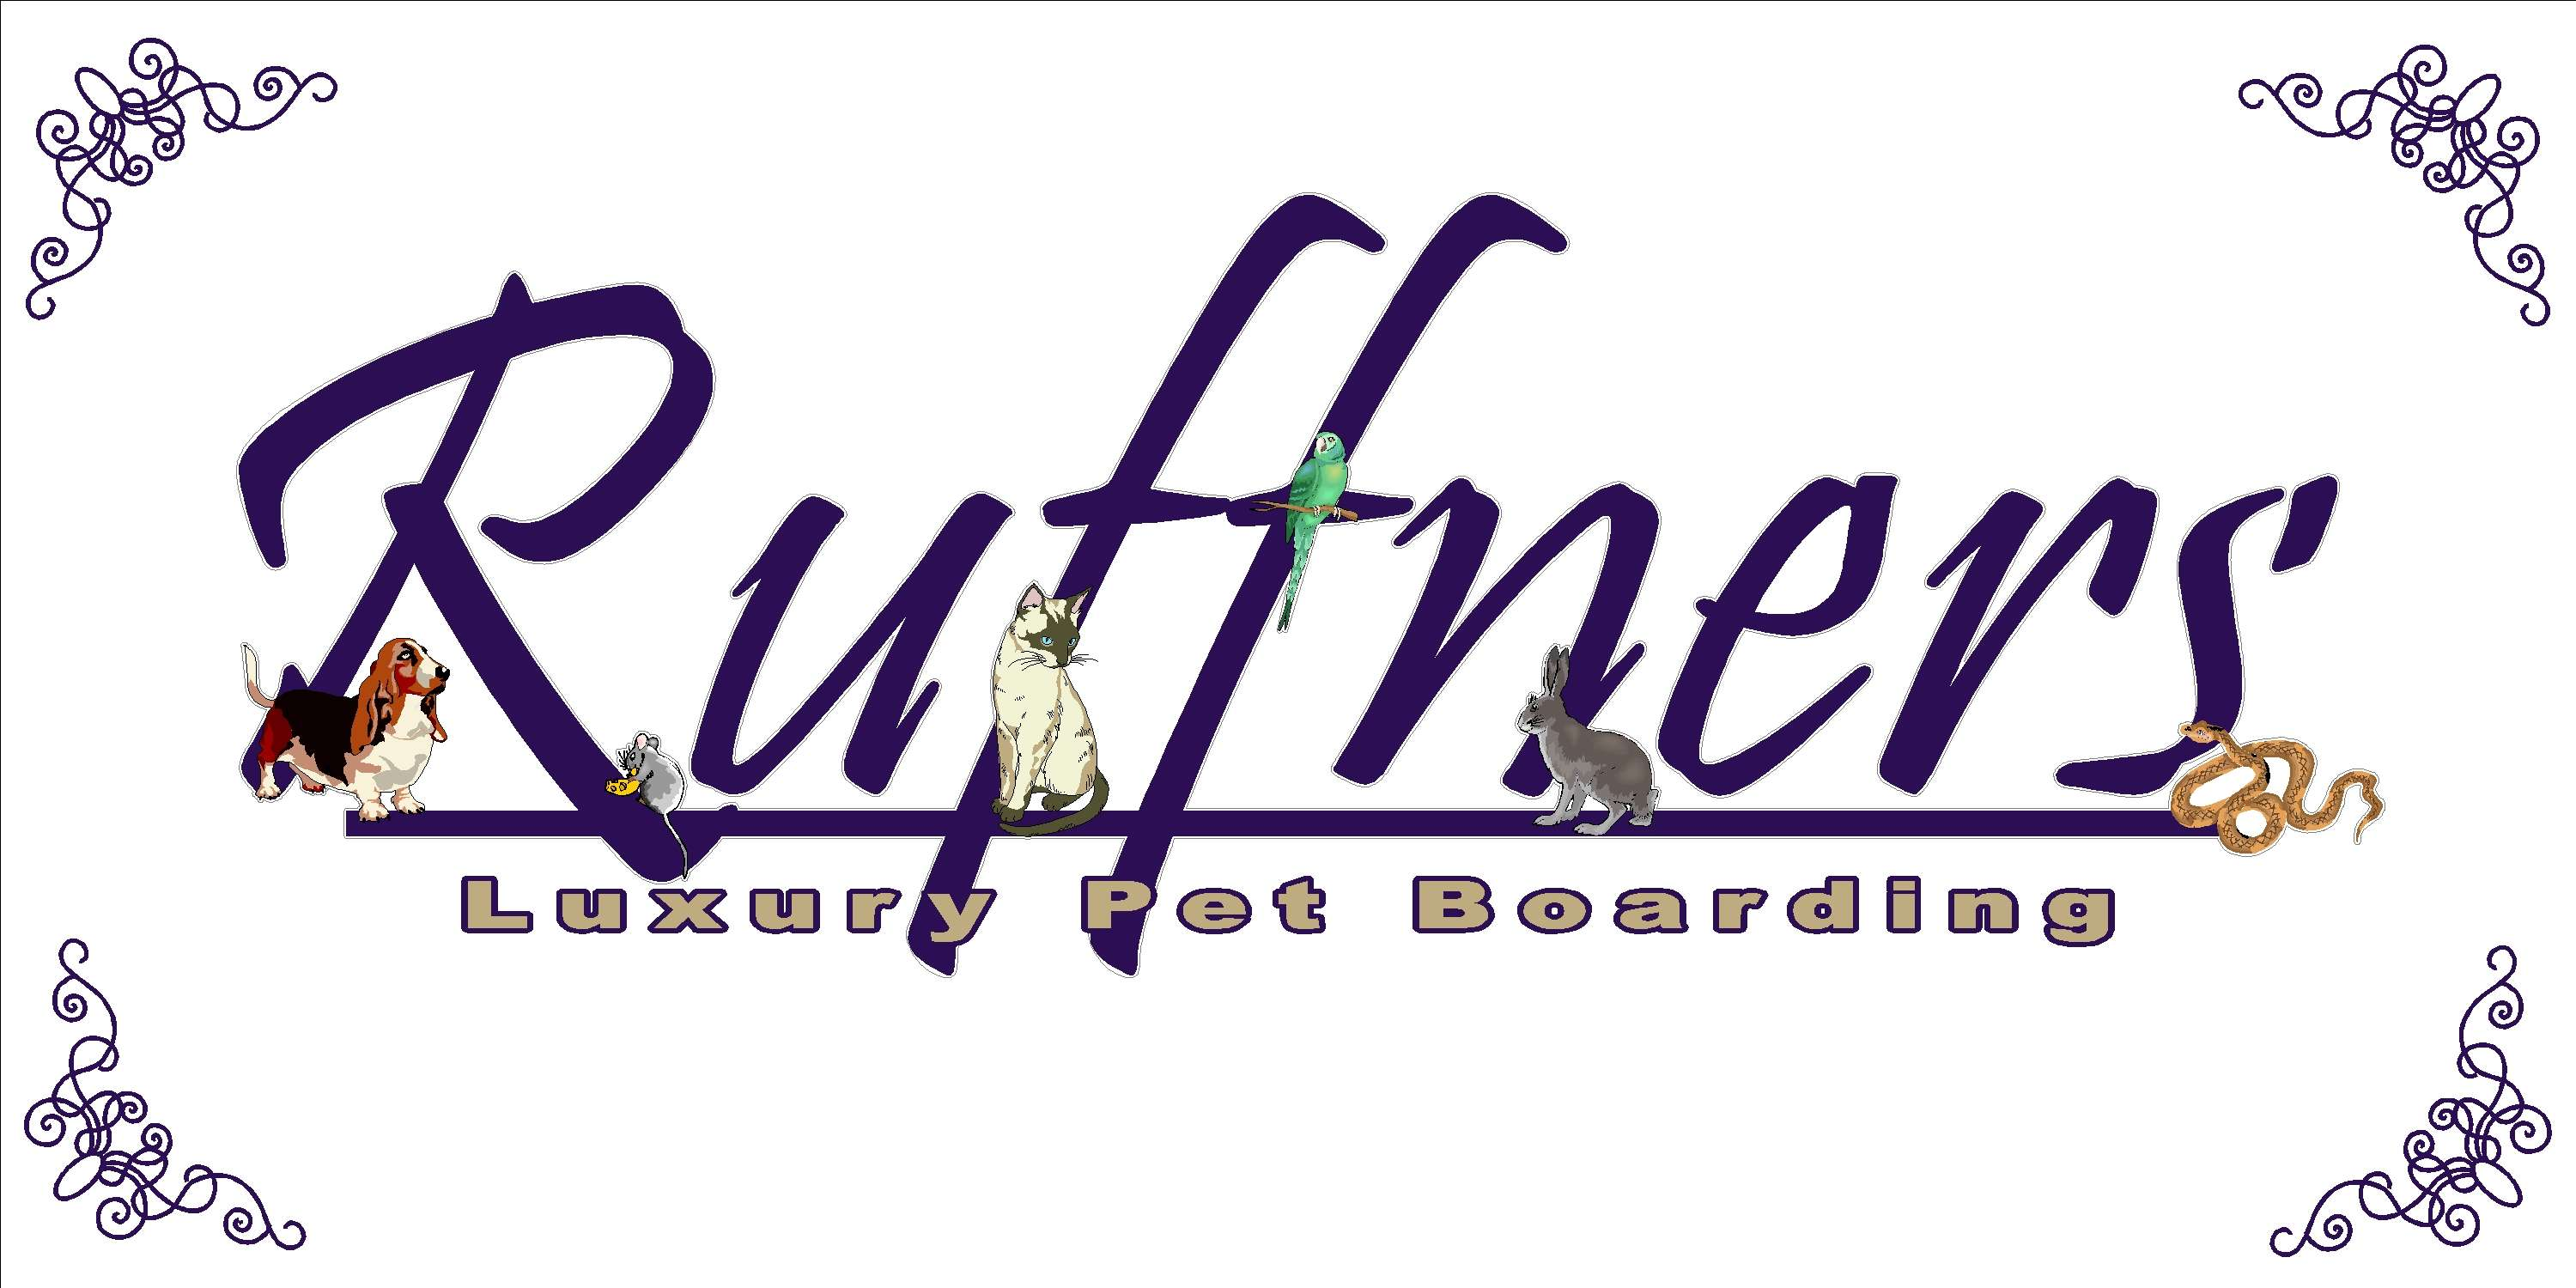 Ruffner's Luxury Pet Boarding